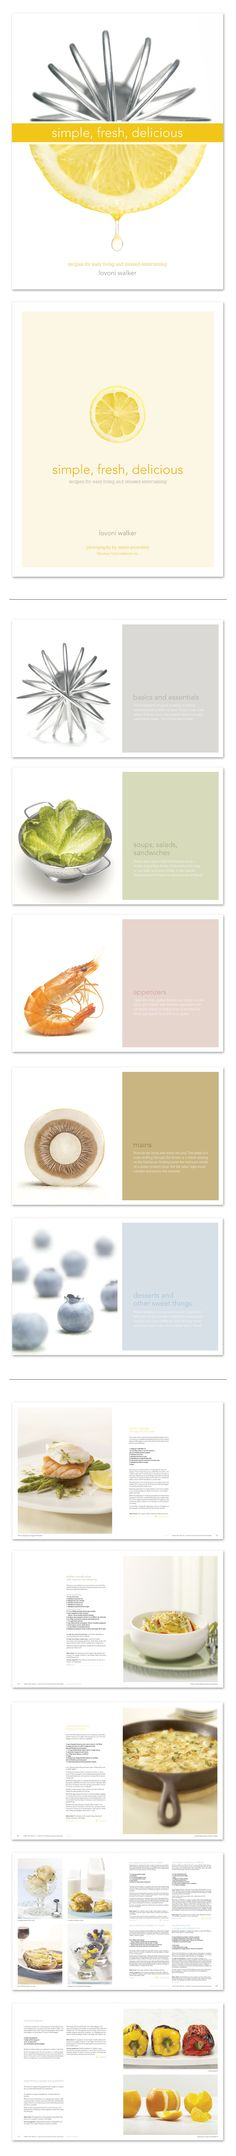 Fabulous Food Creations Simple, Fresh, Delicious Recipe Book Kelly Nyvoll  Full recipe book layout with the theme simple, fresh, delicious.